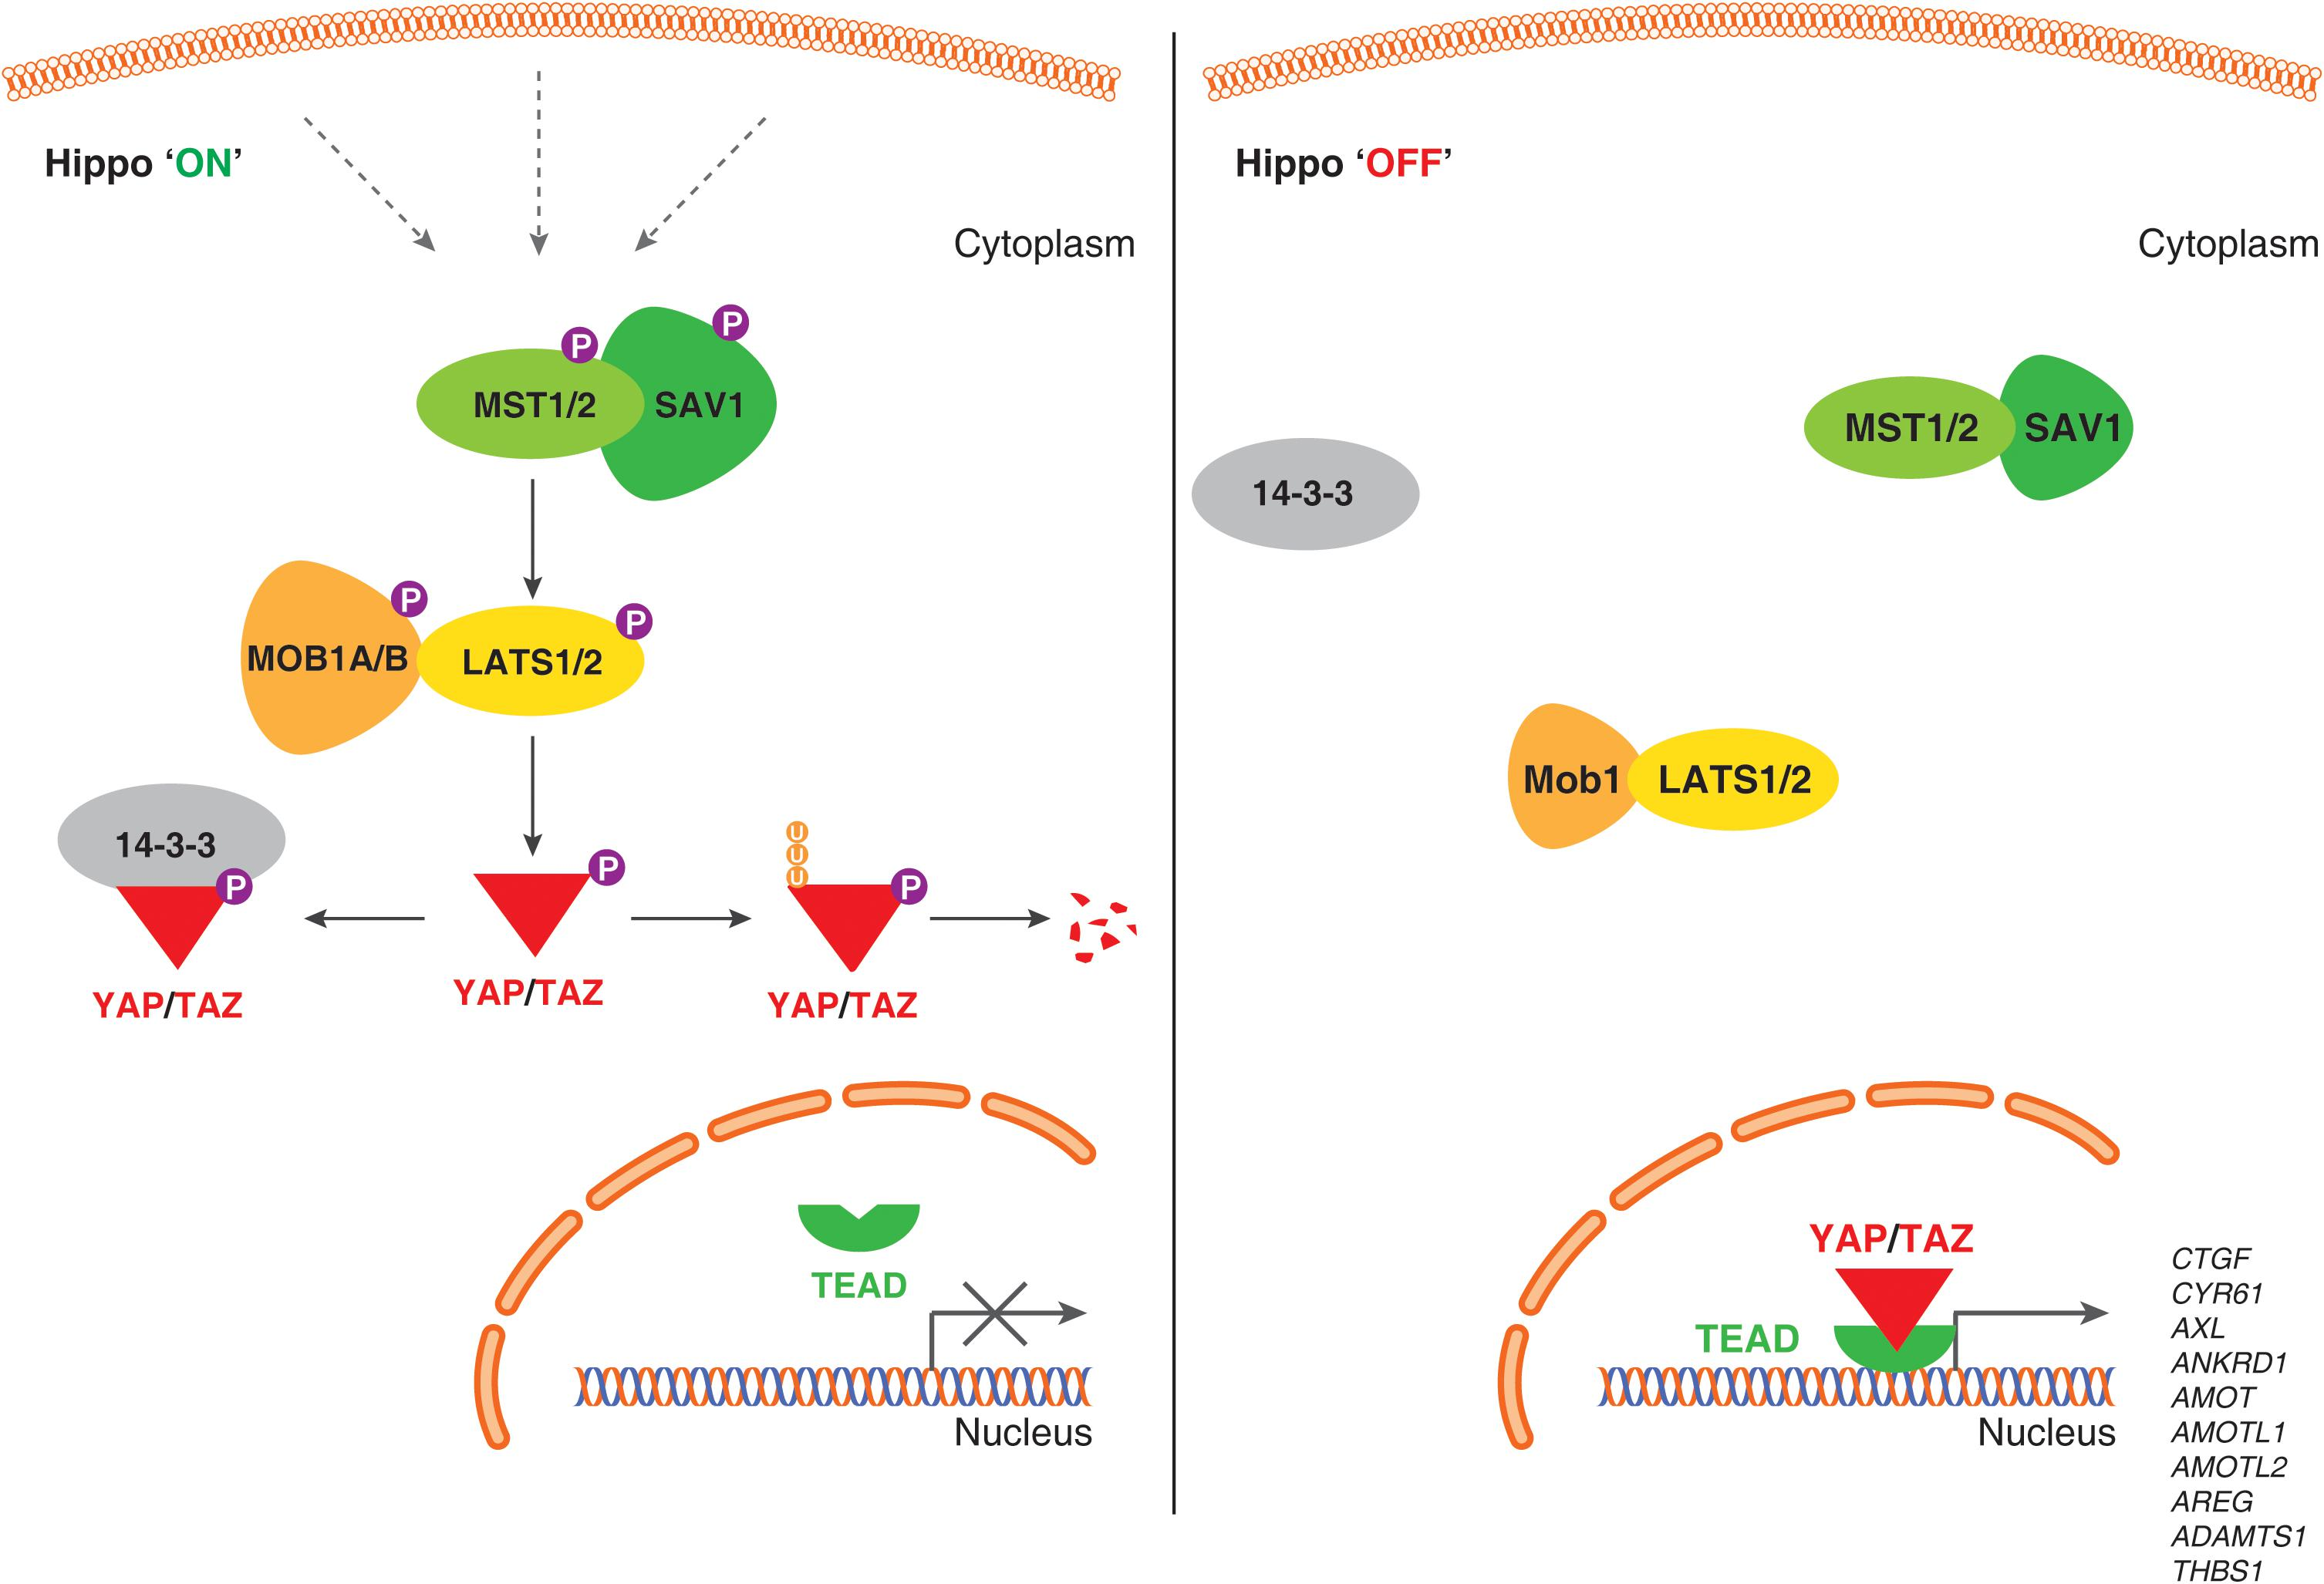 Frontiers | Role of Hippo Pathway-YAP/TAZ Signaling in Angiogenesis